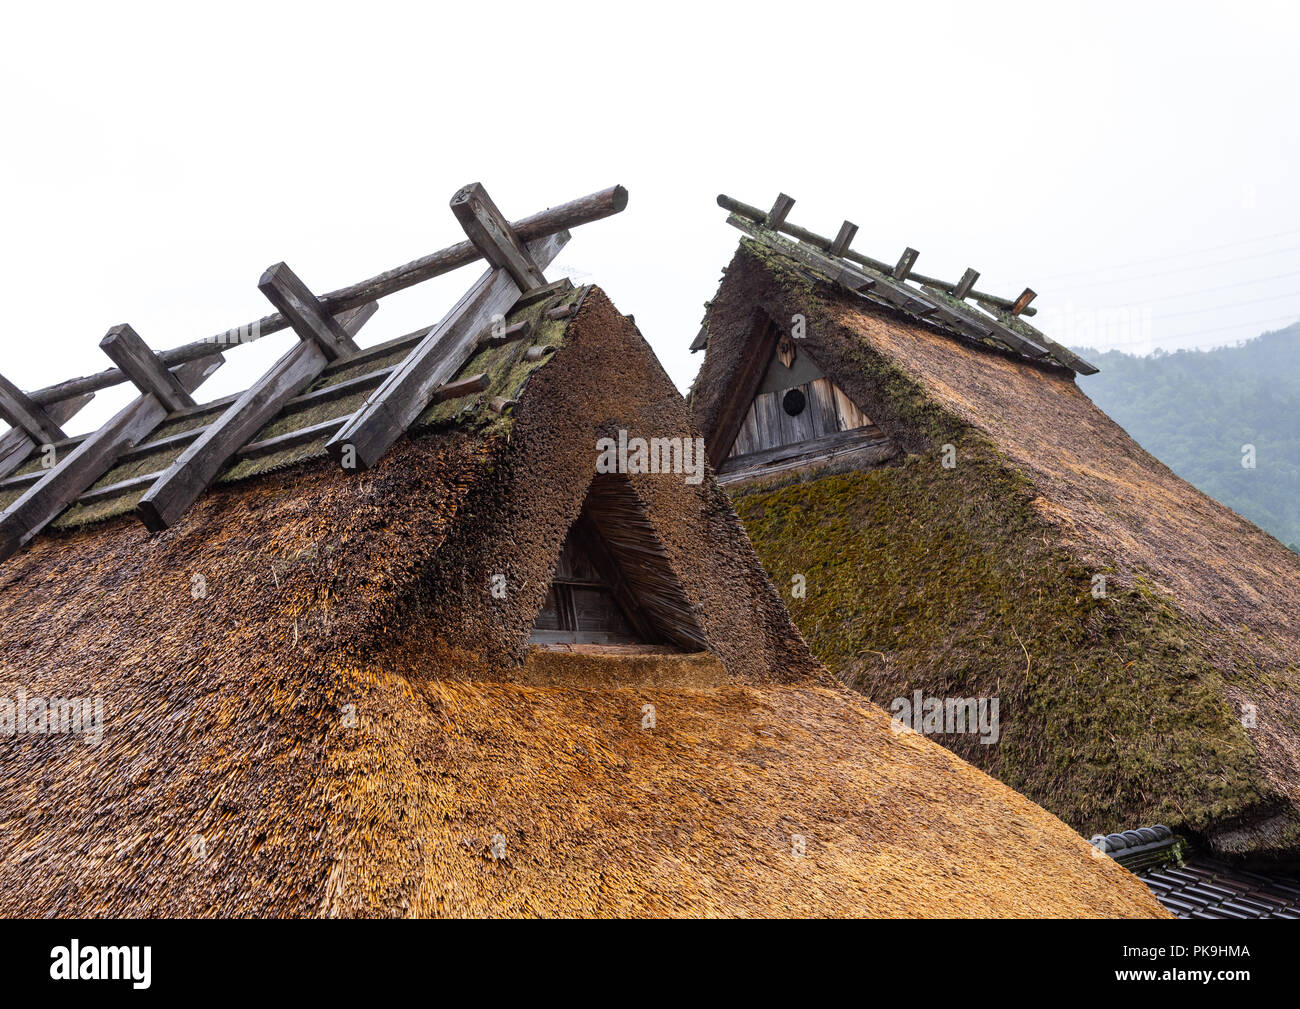 Thatched roofed houses in a traditional village, Kyoto Prefecture, Miyama, Japan - Stock Image